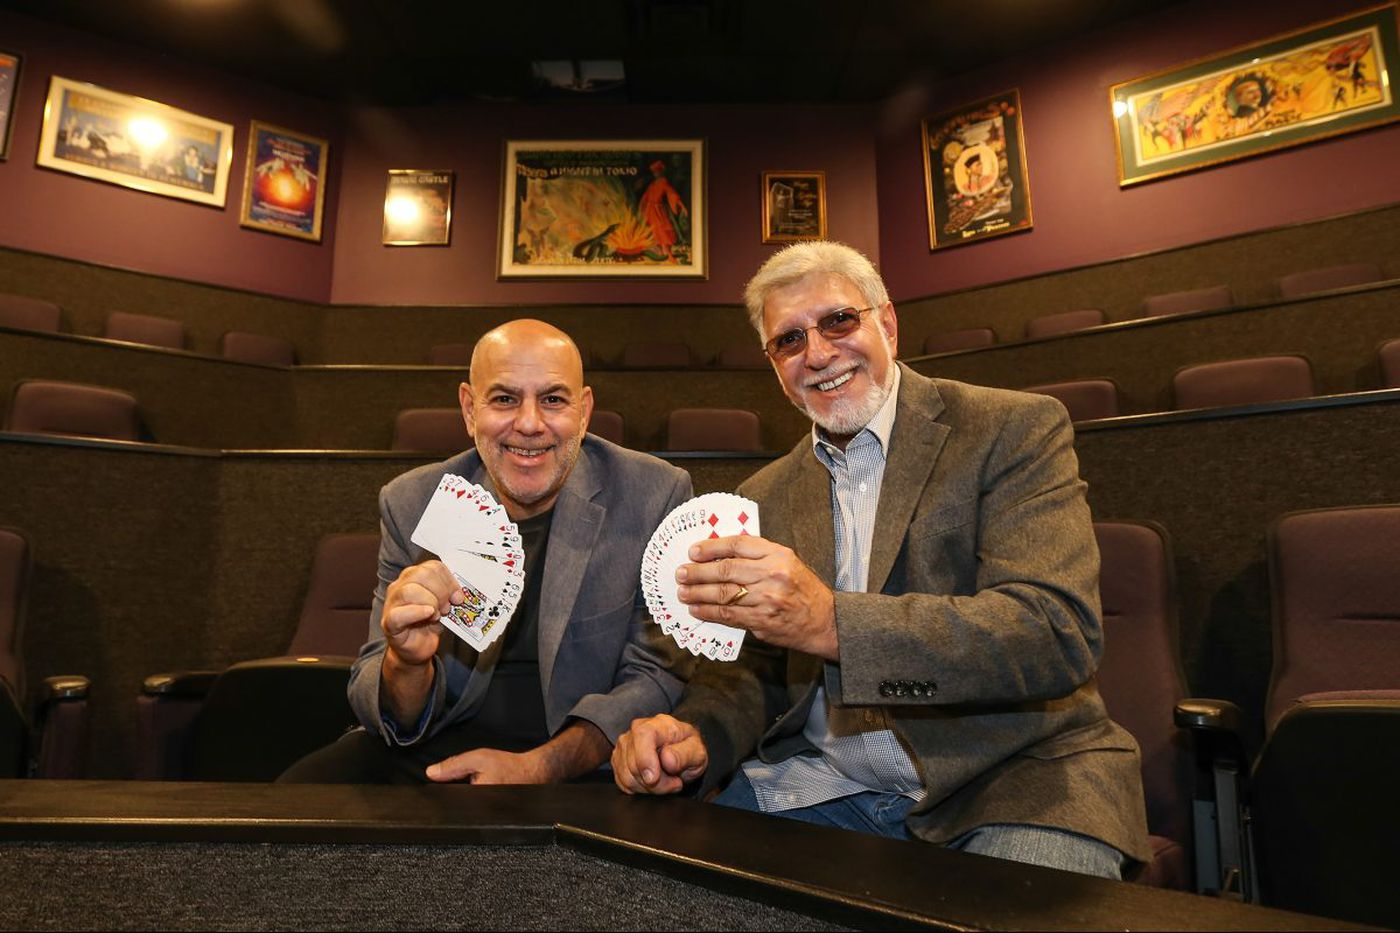 Huntingdon Valley's new Smoke and Mirrors Theater opens a window into the secret world of magicians